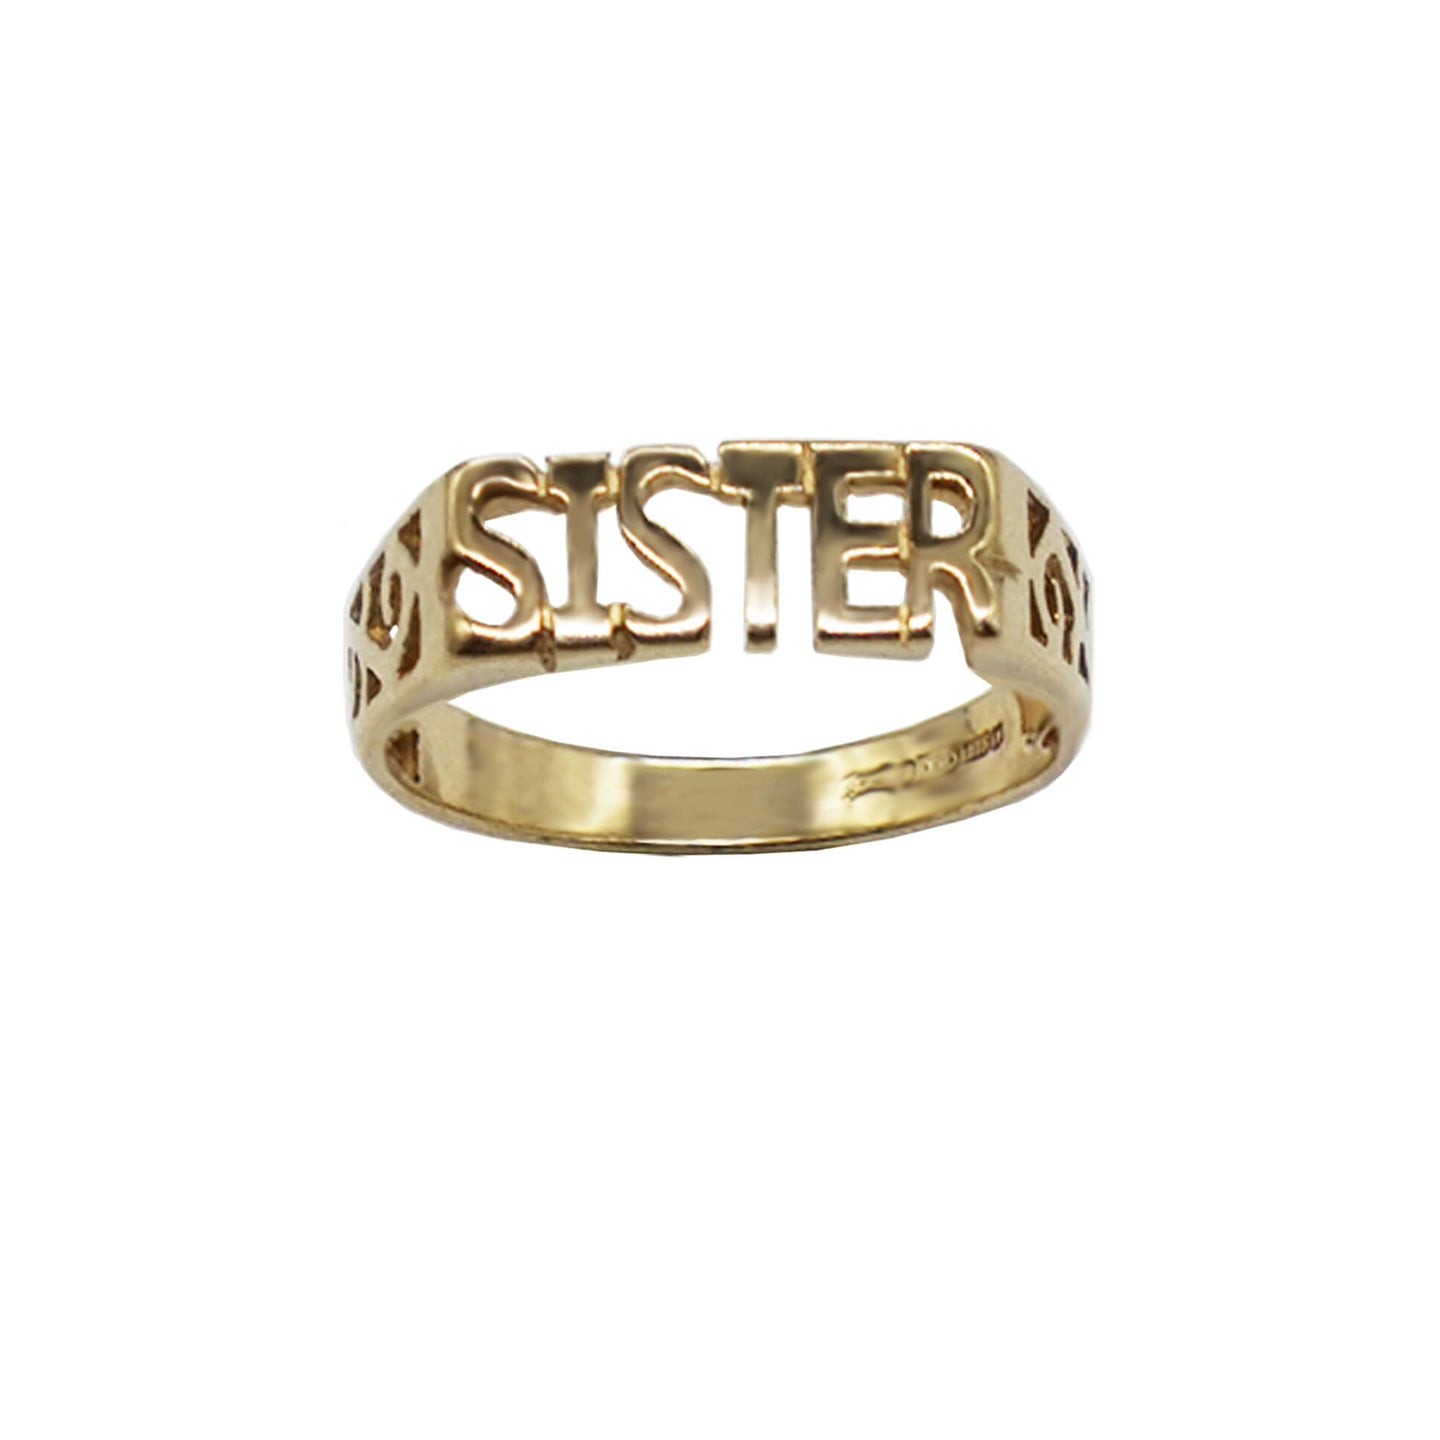 Vintage 9K Gold Sister Ring- letters in capital, open trellis sides, hallmarks visible on inner band. White background.